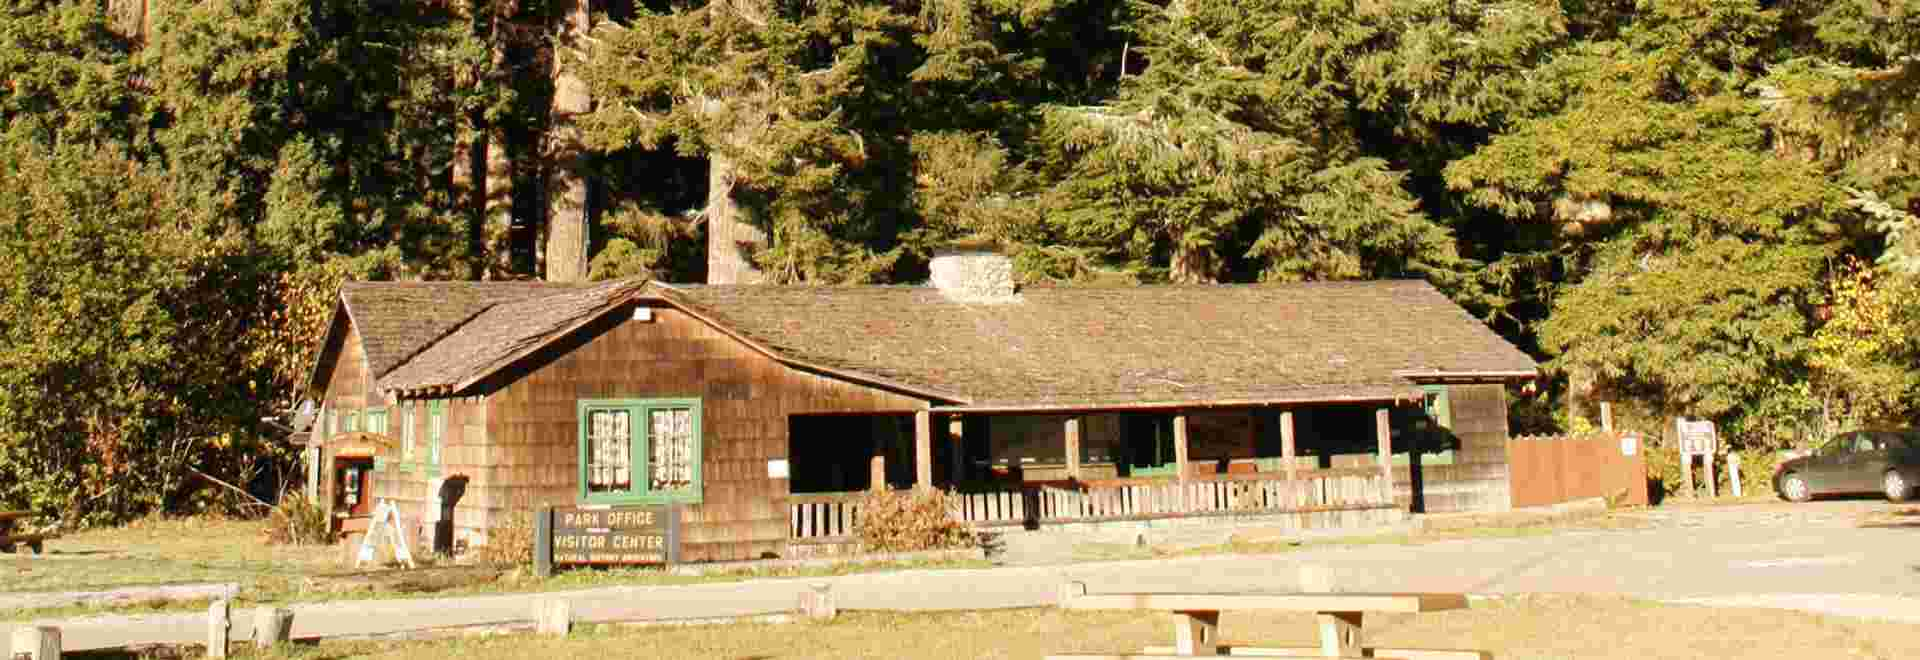 Prairie Creek visitor center, Prairie Creek Redwoods and Redwood National and State Parks